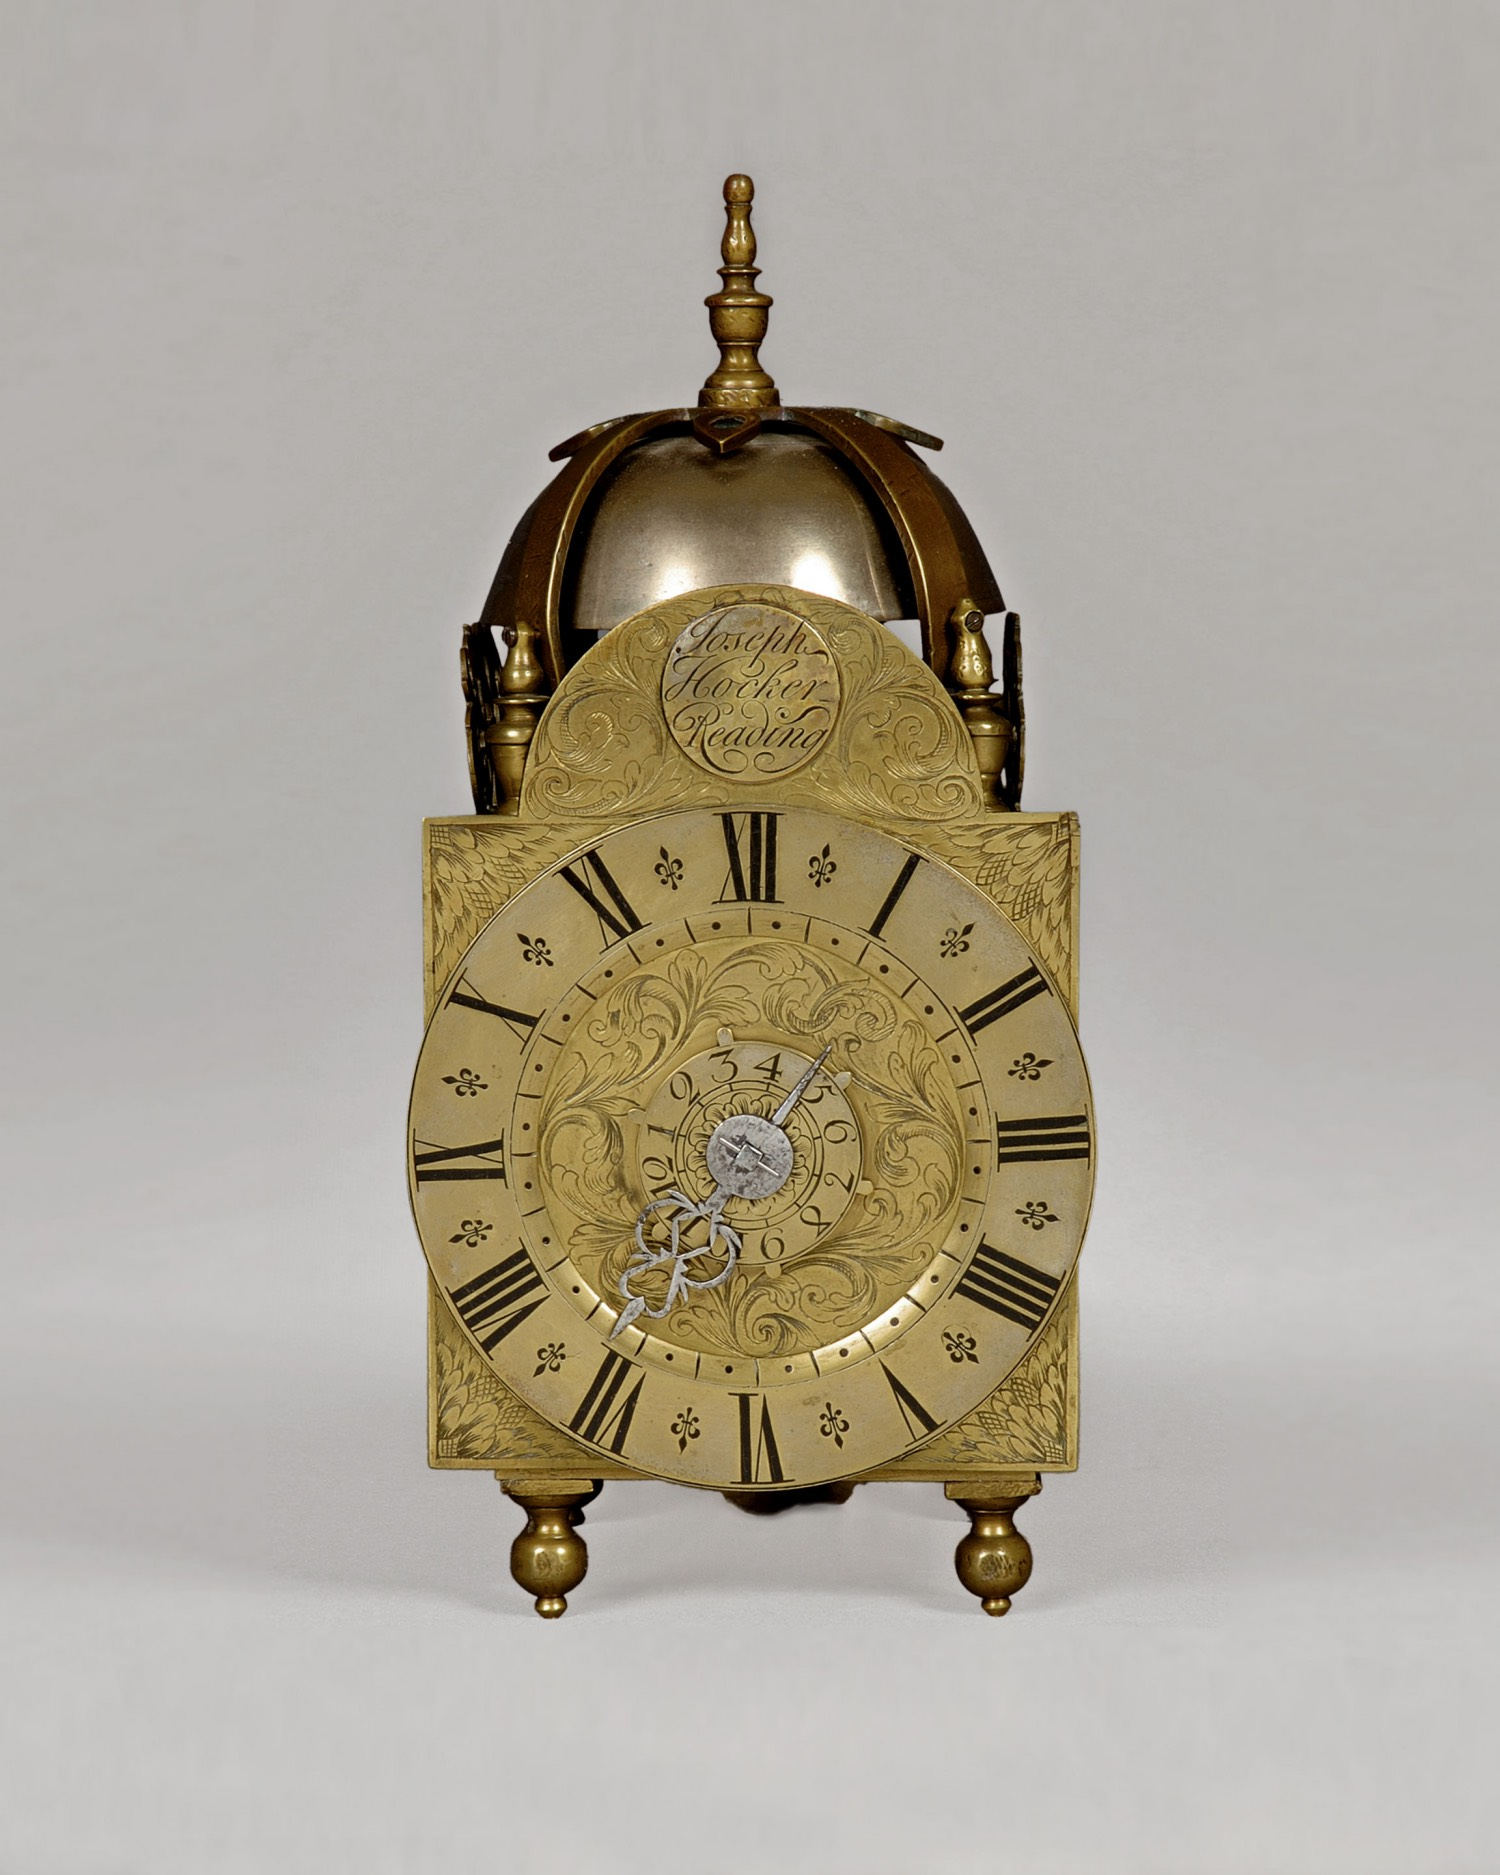 JOSEPH HOCKER. QUEEN ANNE PERIOD LANTERN CLOCK WITH ALARM AND HOUR STRIKE.